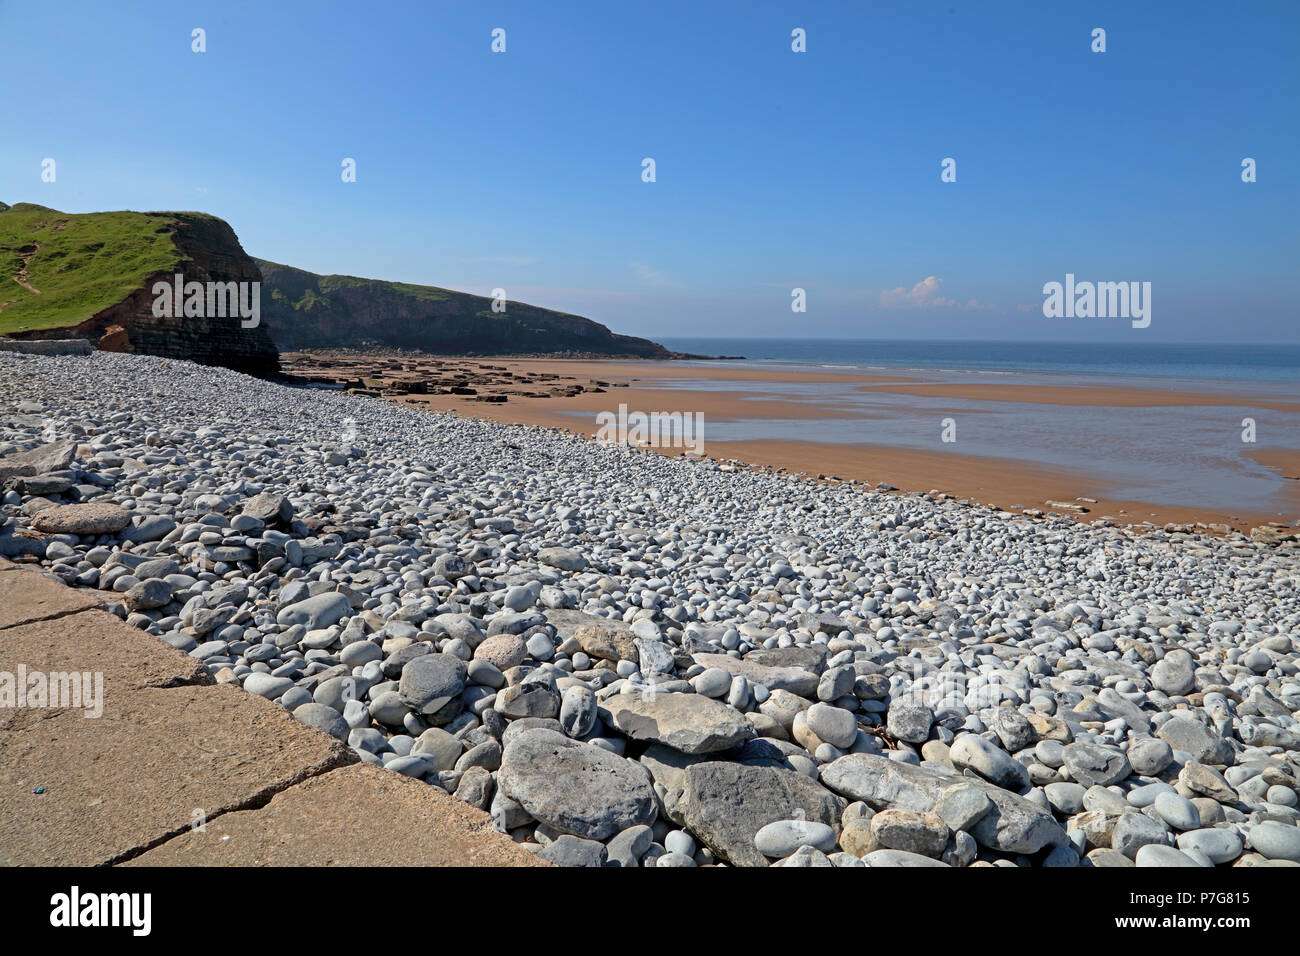 The well known Dunraven bay situated at Southerndown near Bridgend with its golden sands and huge roacks dotted all over the beach. - Stock Image